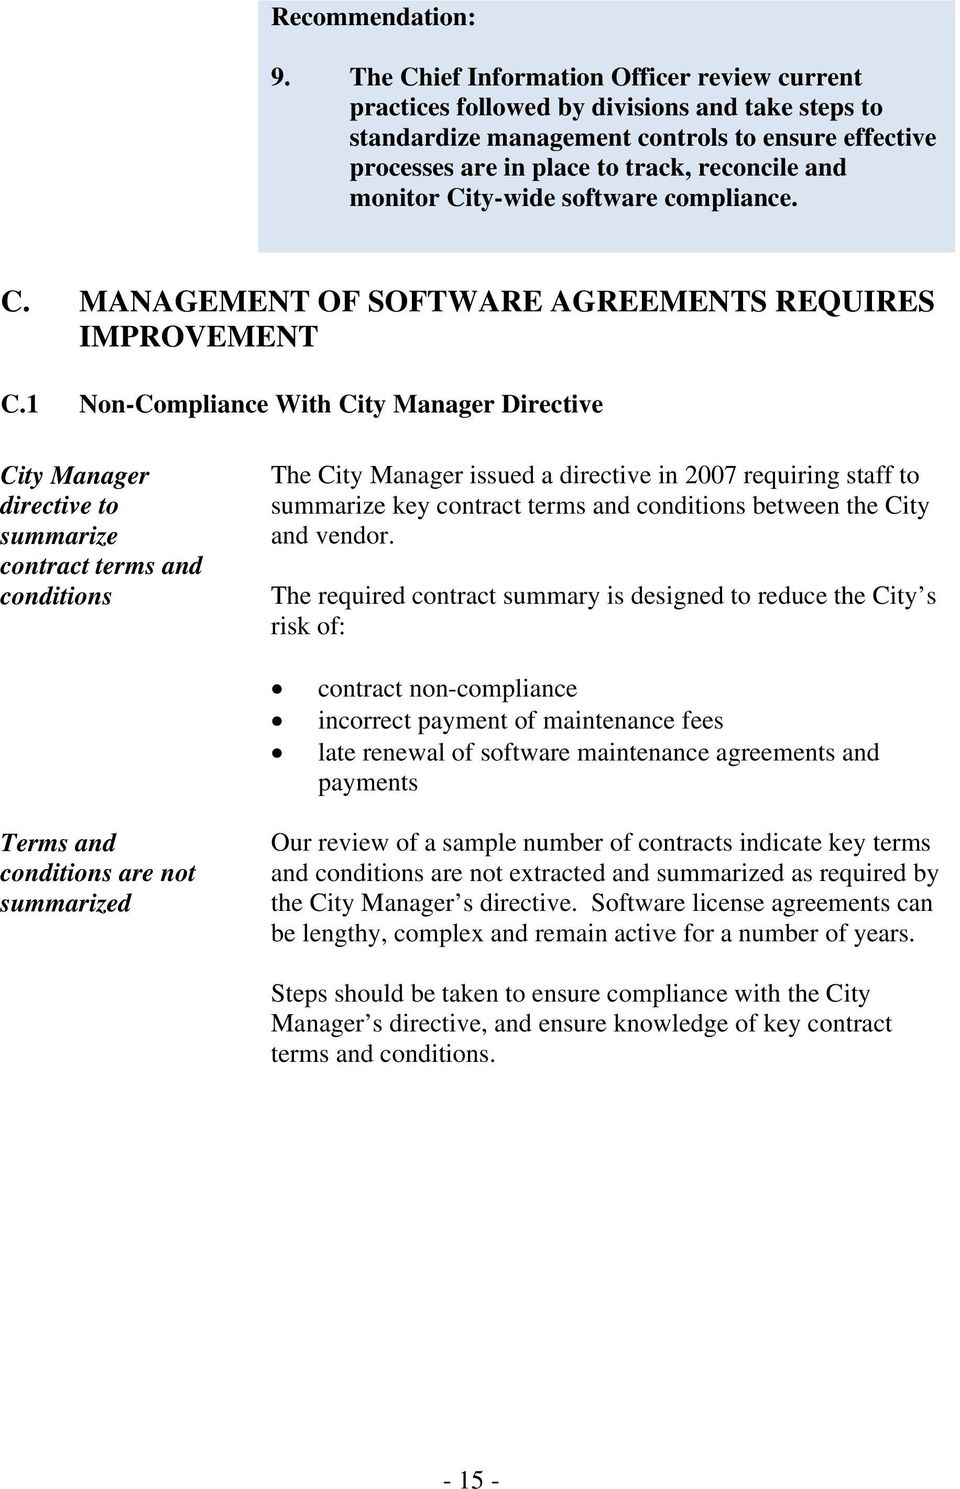 monitor City-wide software compliance. C. MANAGEMENT OF SOFTWARE AGREEMENTS REQUIRES IMPROVEMENT C.